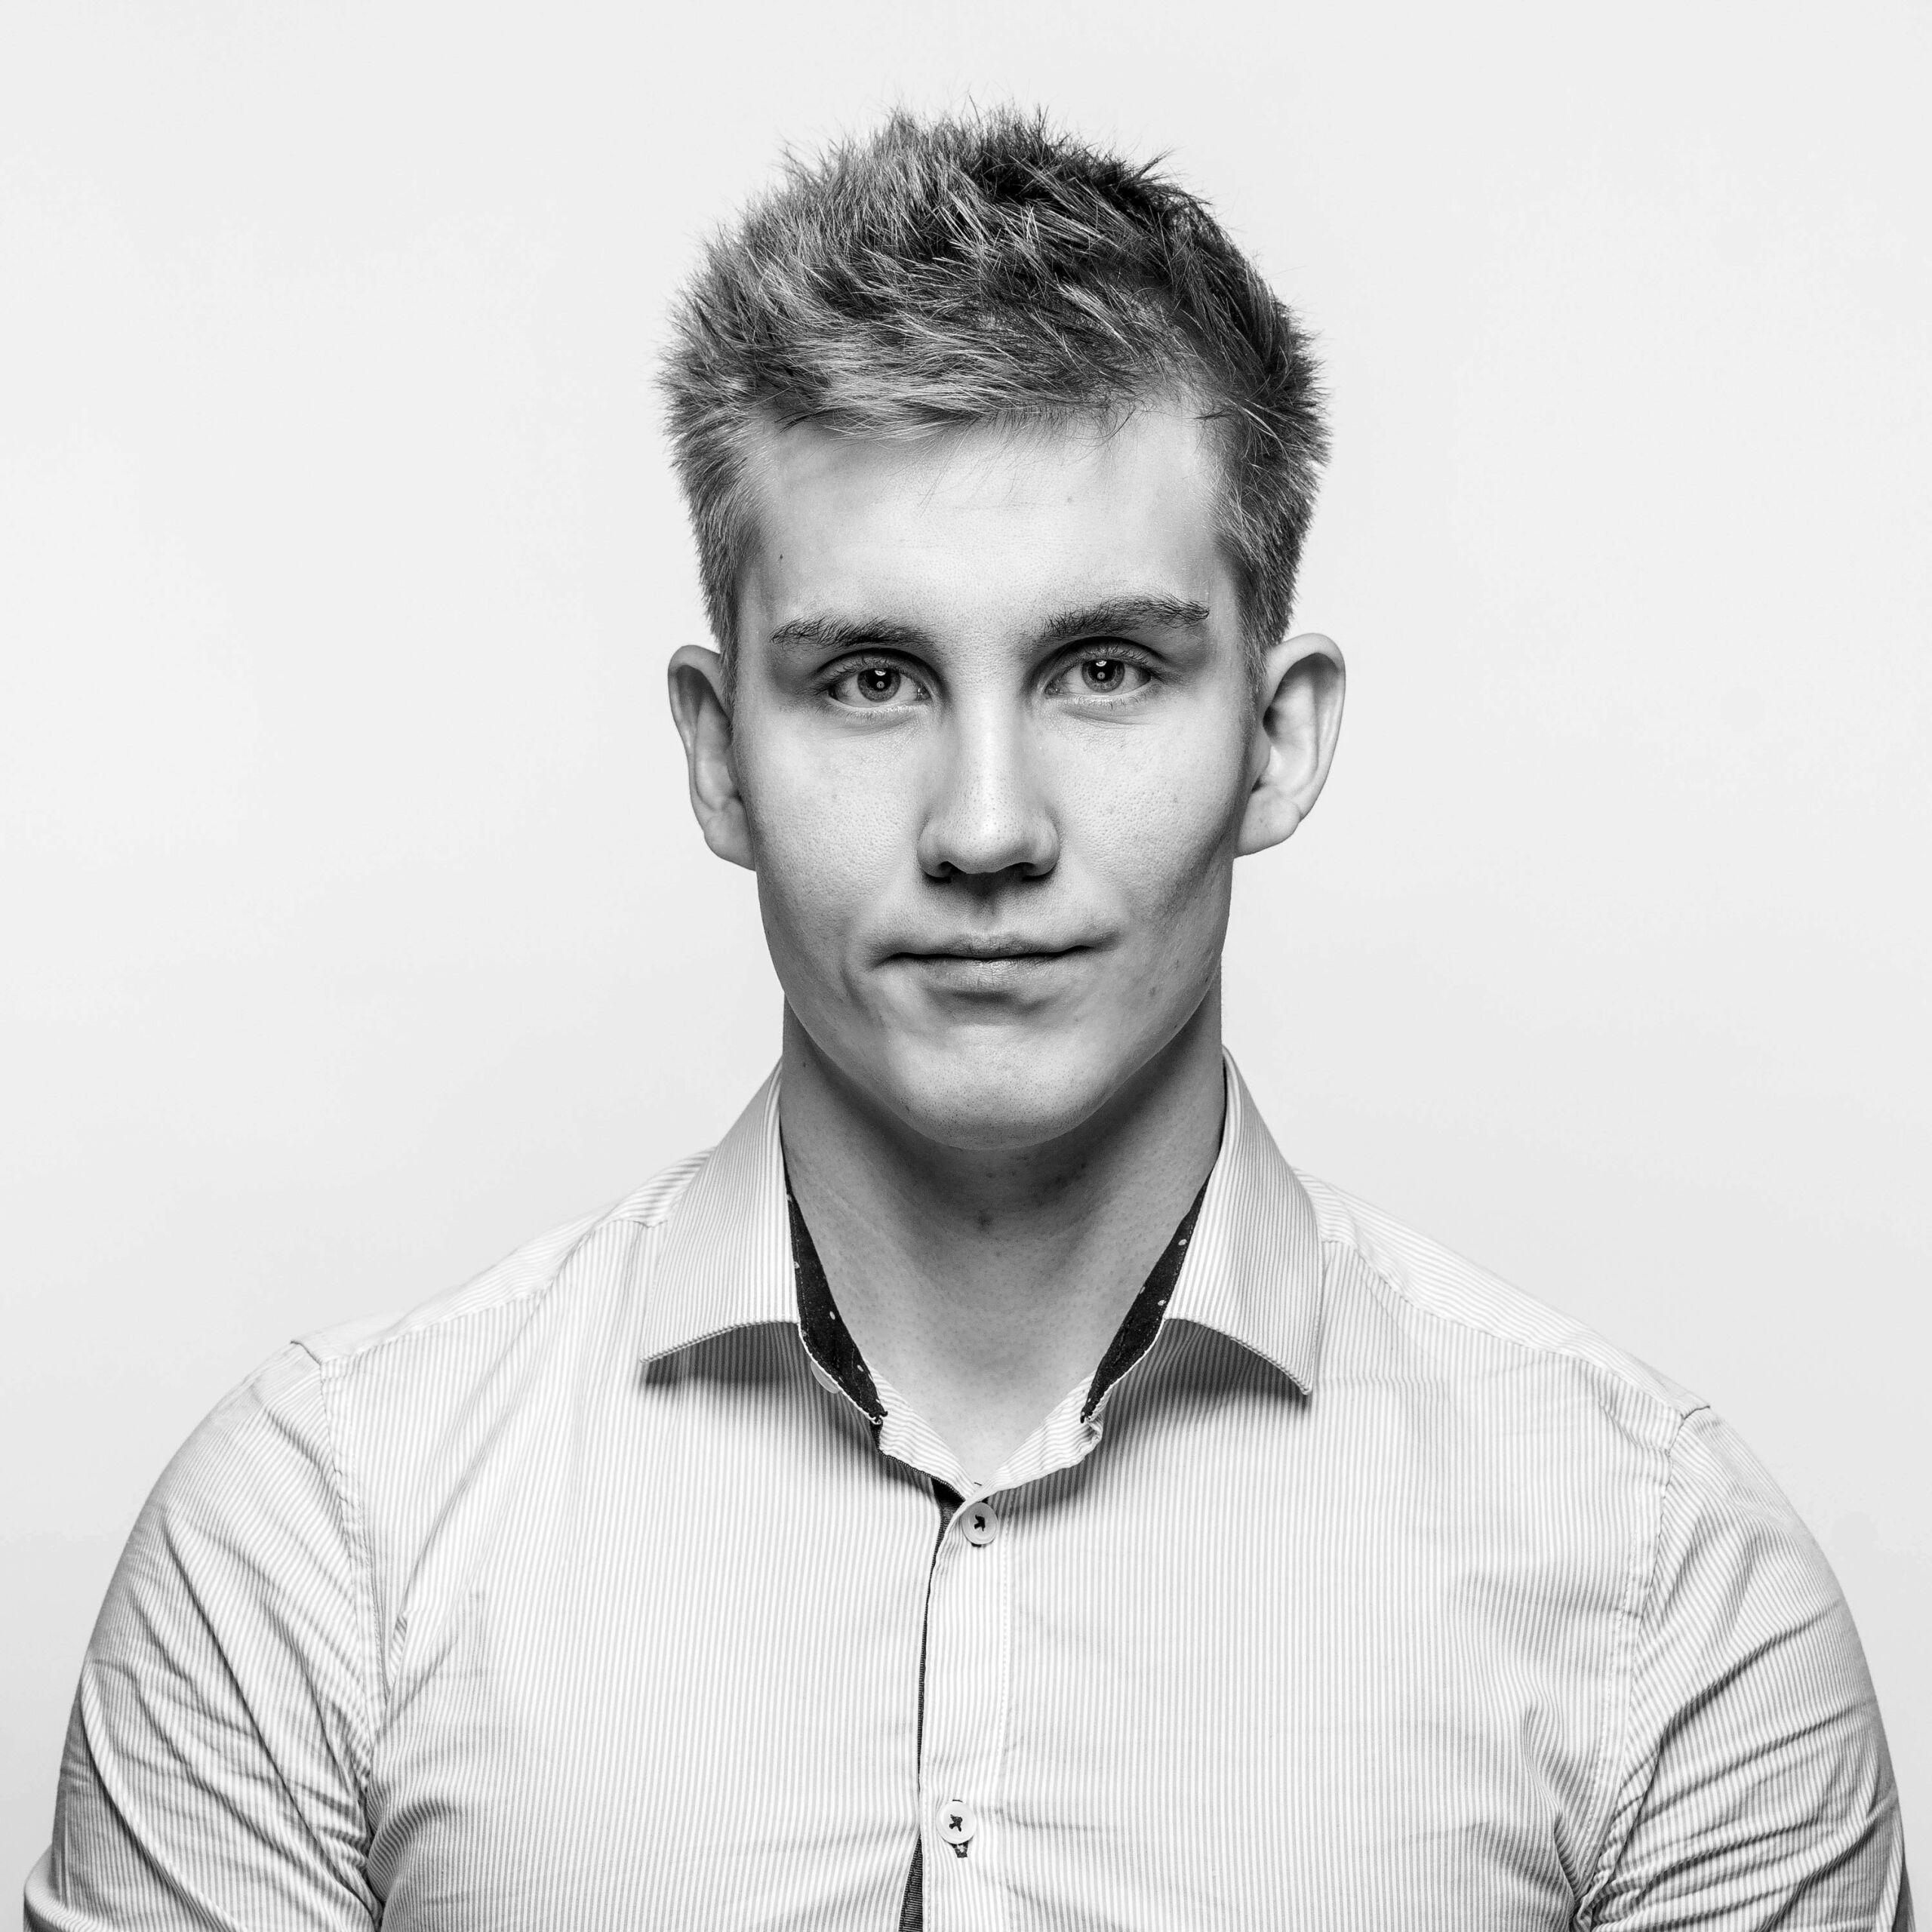 Jesse Nieminen, Viima - How to Perfect the Art of Generating Ideas, and Turning Ideas into Value